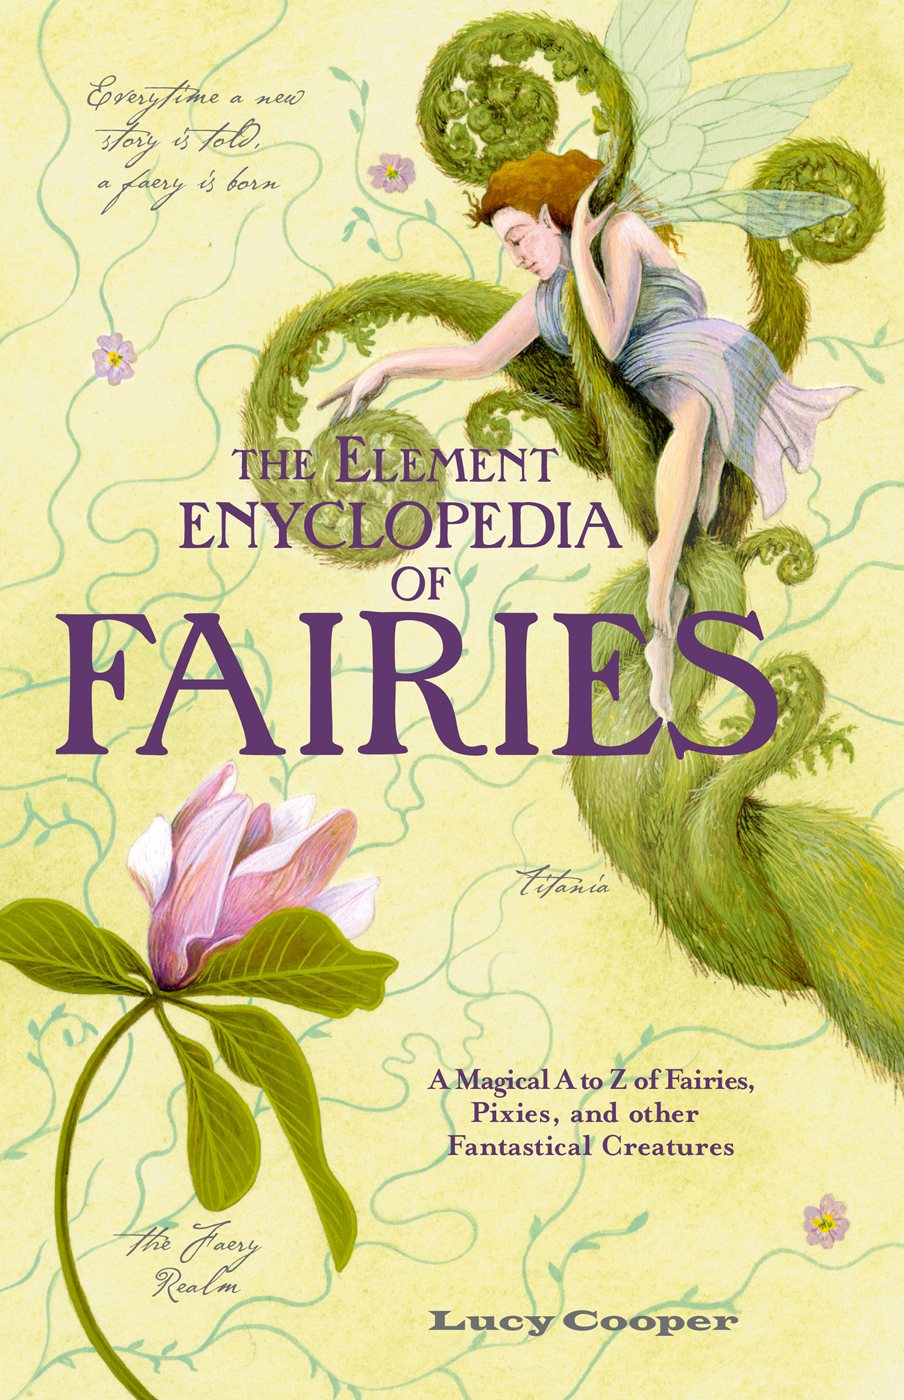 Lucy Cooper THE ELEMENT ENCYCLOPEDIA OF FAIRIES: An A-Z of Fairies, Pixies, and other Fantastical Creatures the torchwood encyclopedia